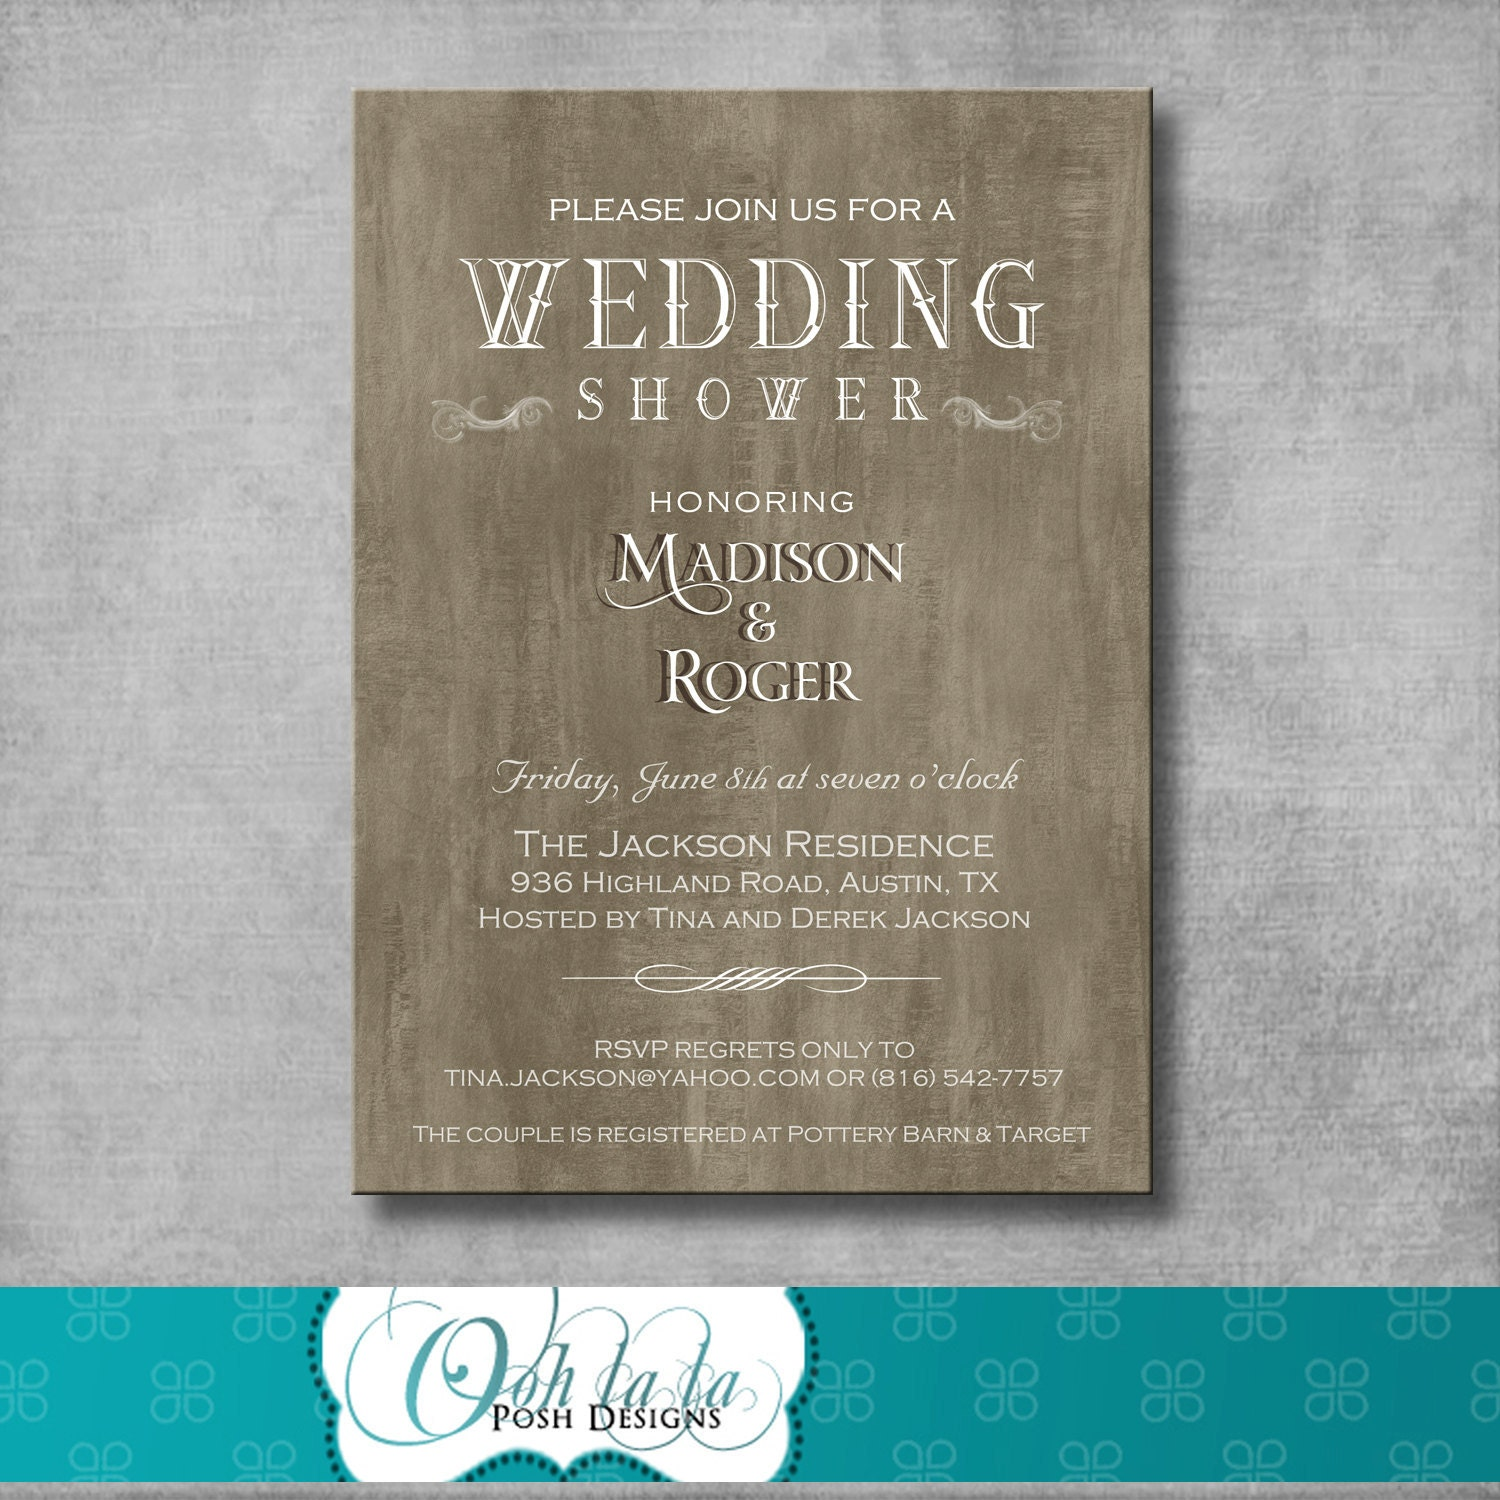 Rustic Elegant Wedding Shower Invitation by OohlalaPoshDesigns